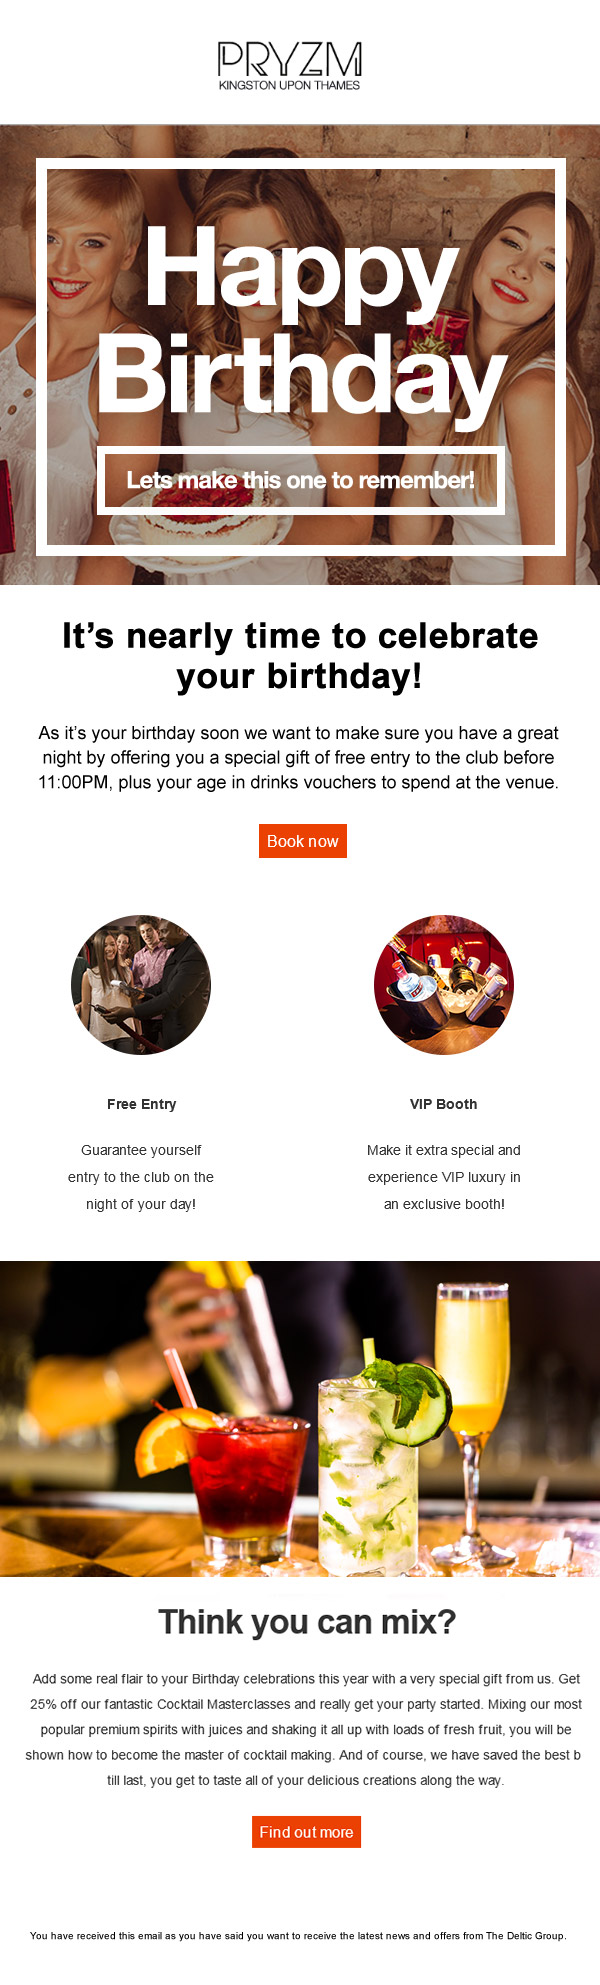 """Happy Birthday"" Email Campaign"